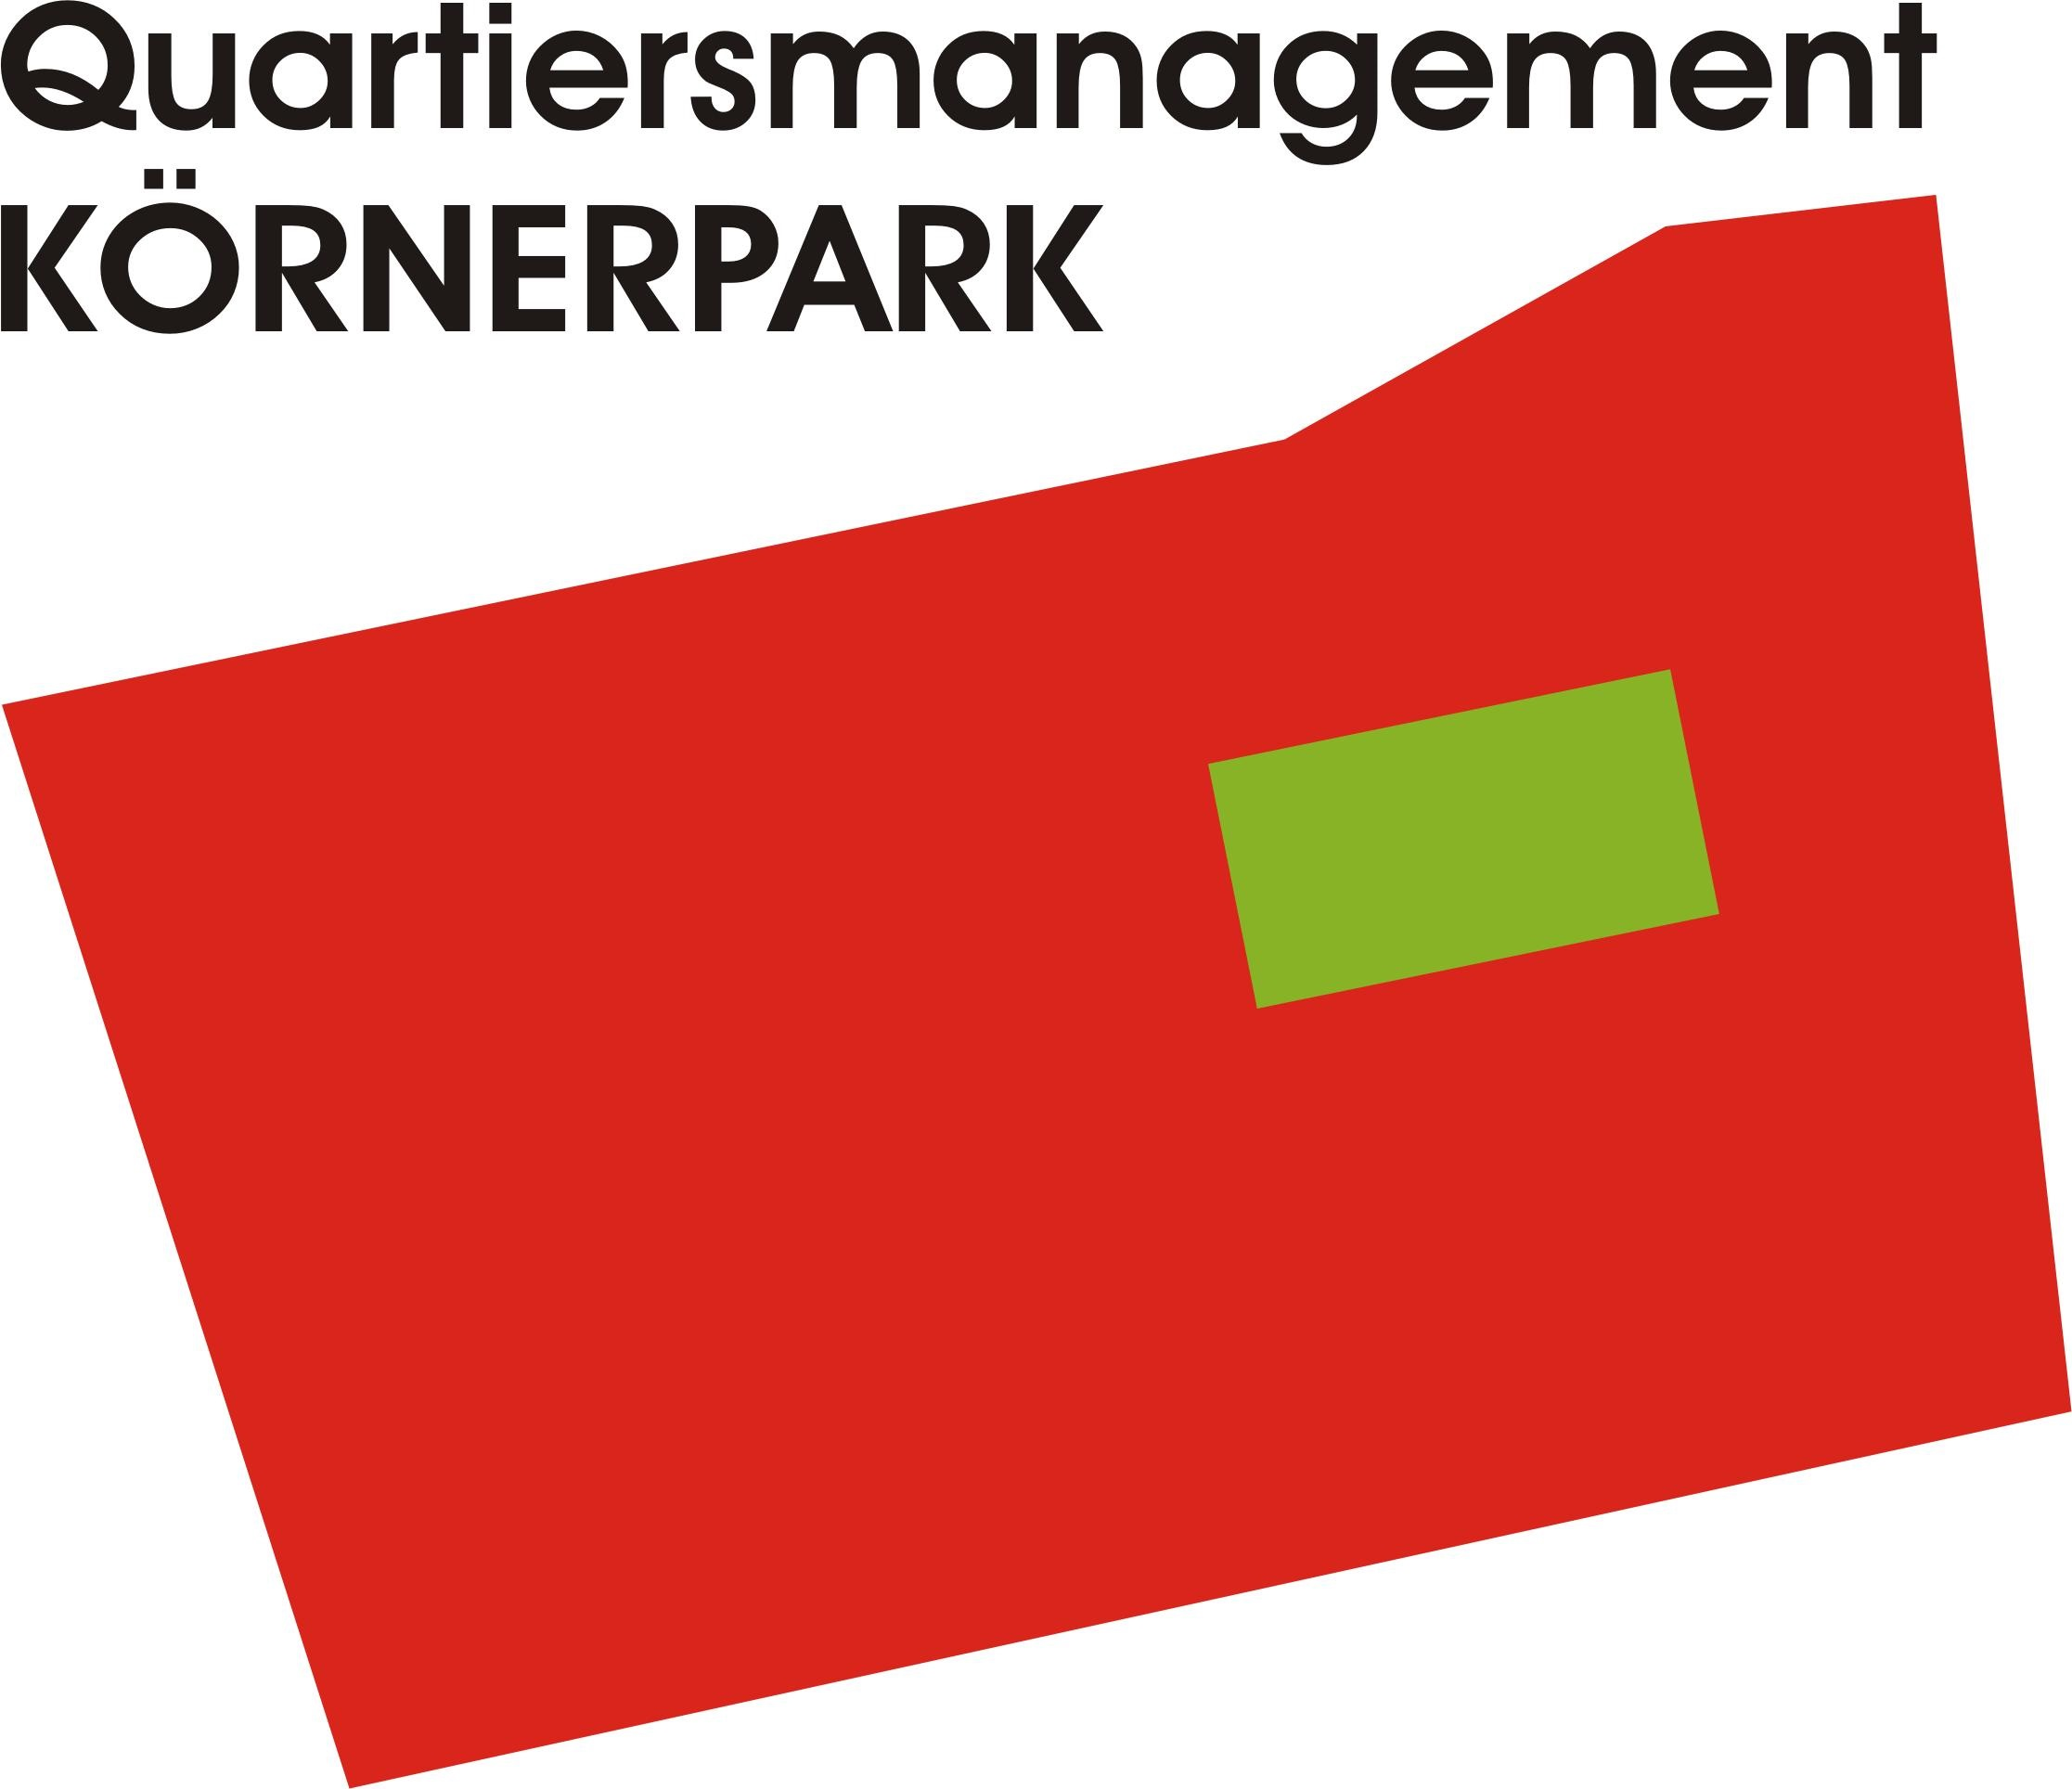 Quartiersmanagement Körnerpark